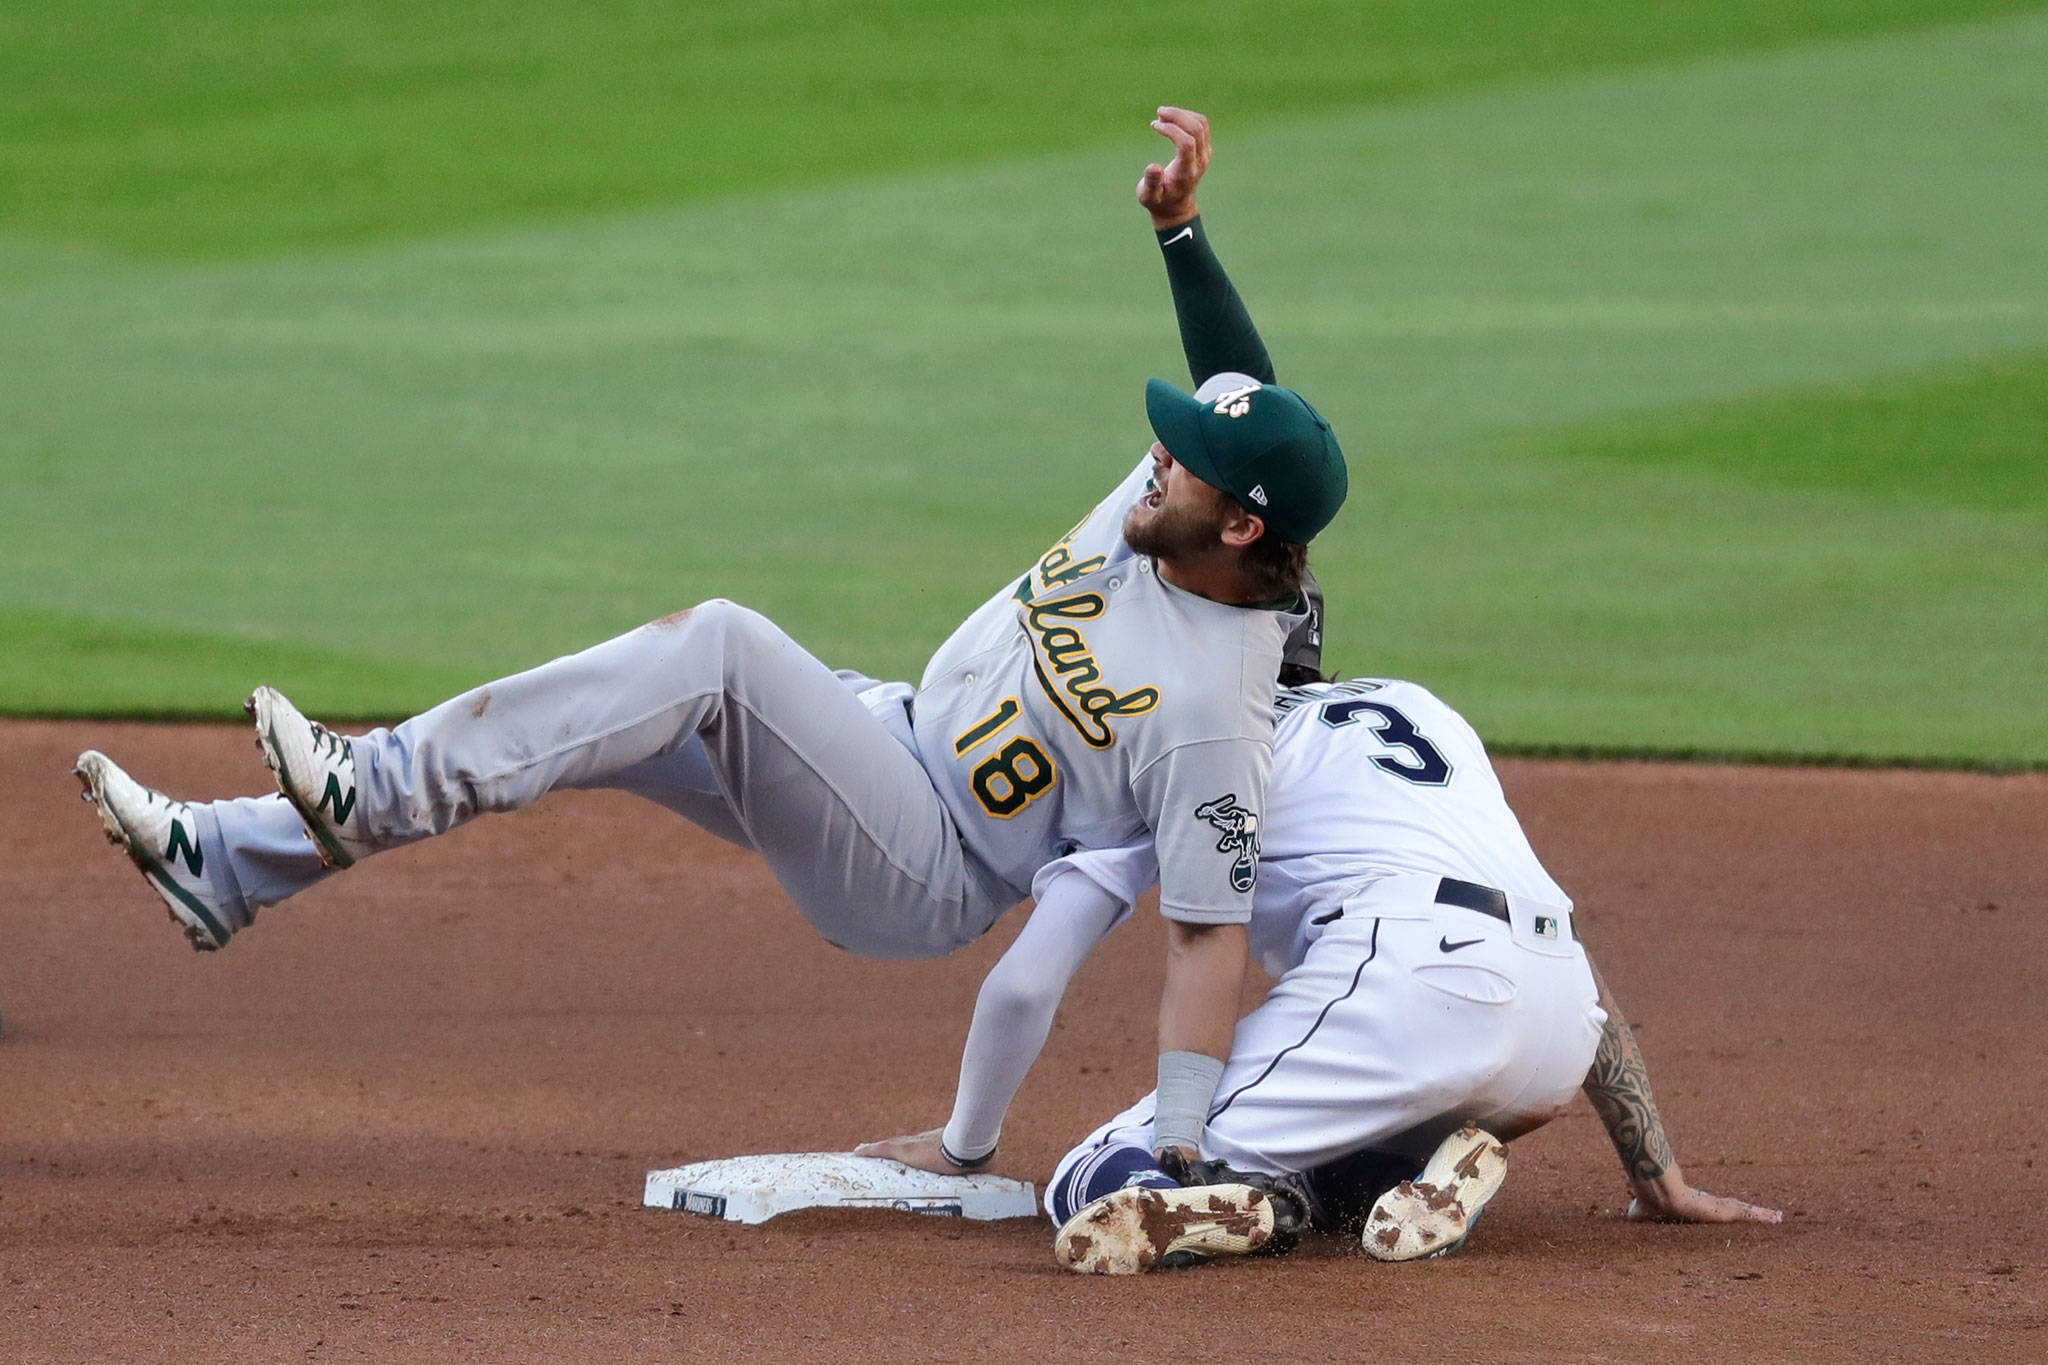 Athletics second baseman Chad Pinder (18) falls on the Mariners' J.P. Crawford after tagging Crawford out at second base on a stolen-base attempt during the fifth inning of a game Aug. 1, 2020, in Seattle. (AP Photo/Elaine Thompson)